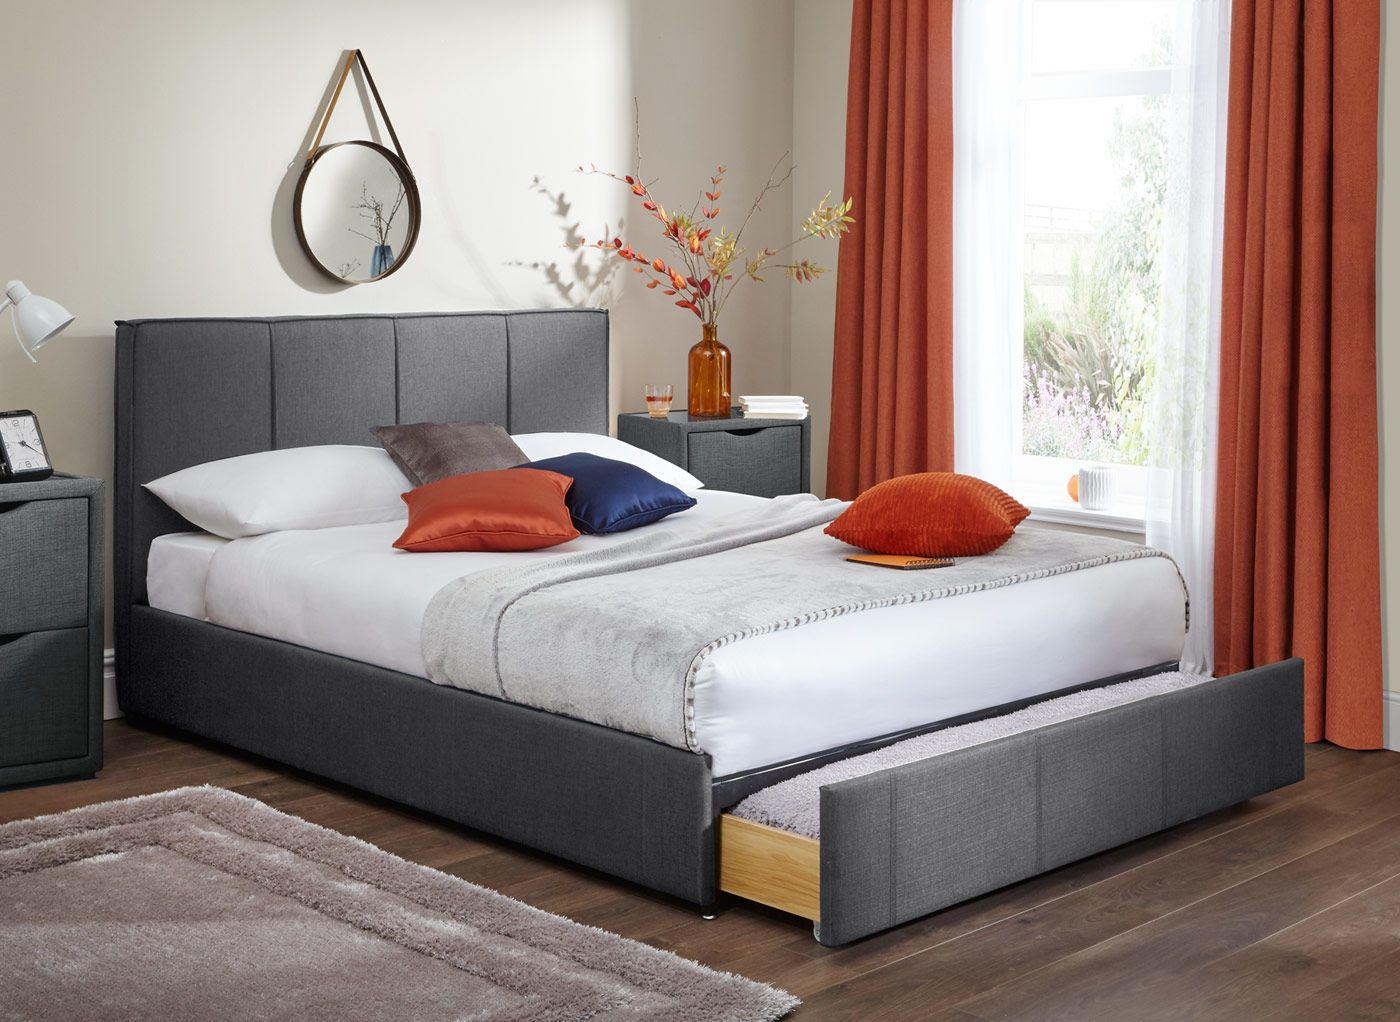 Wide Range Of Quality Single Double King Size Upholstered Beds Online All With Free Delivery From Dreams Britain S Leading Bed Specialist